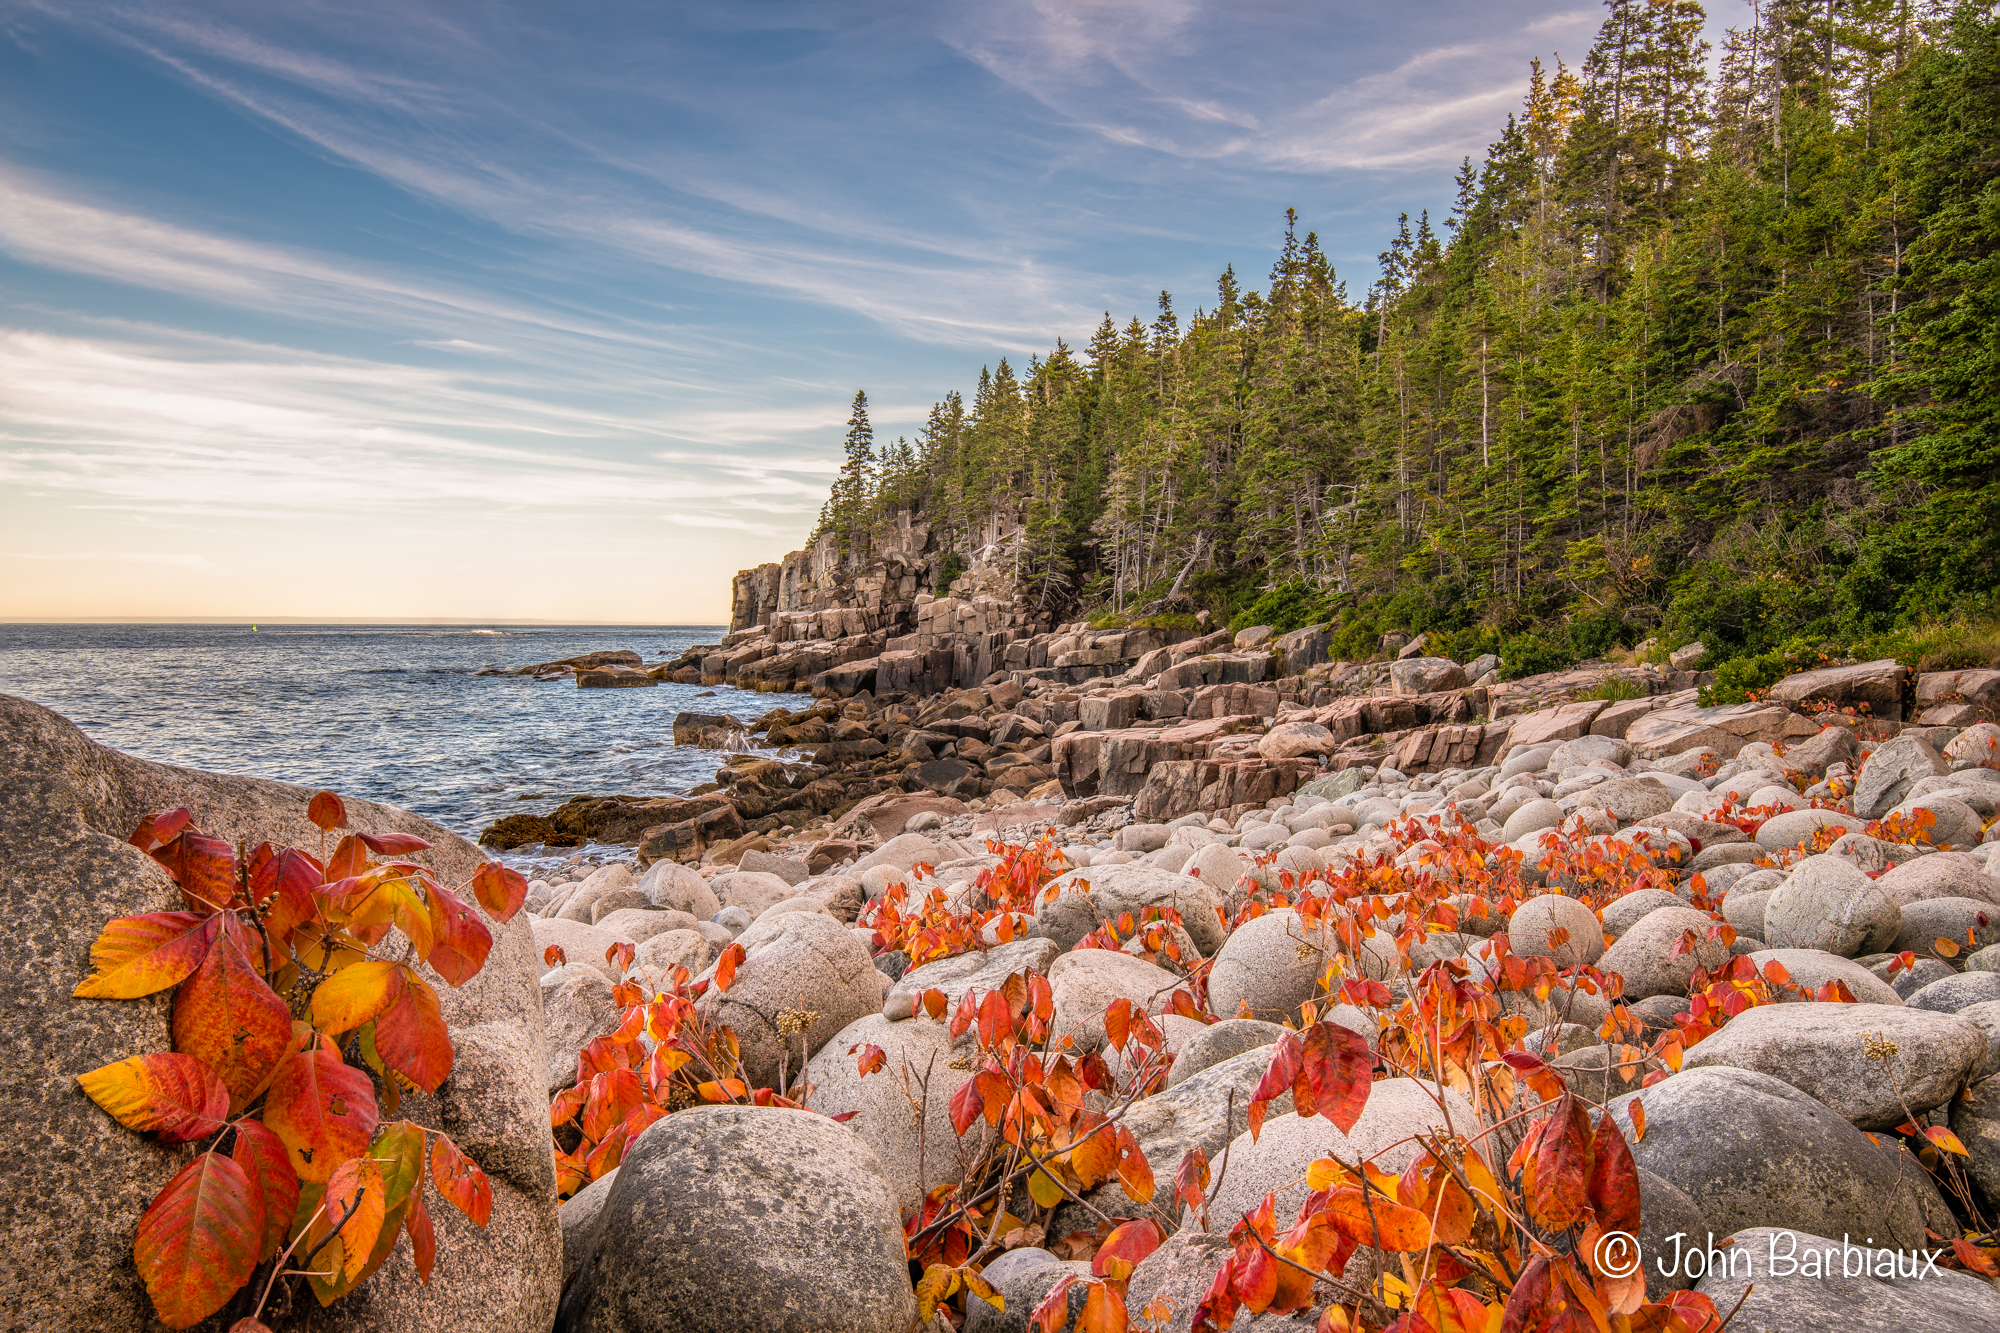 Acadia National Park, fine art photography, landscape photography, autumn, fall, foliage, ground cover, professional photography